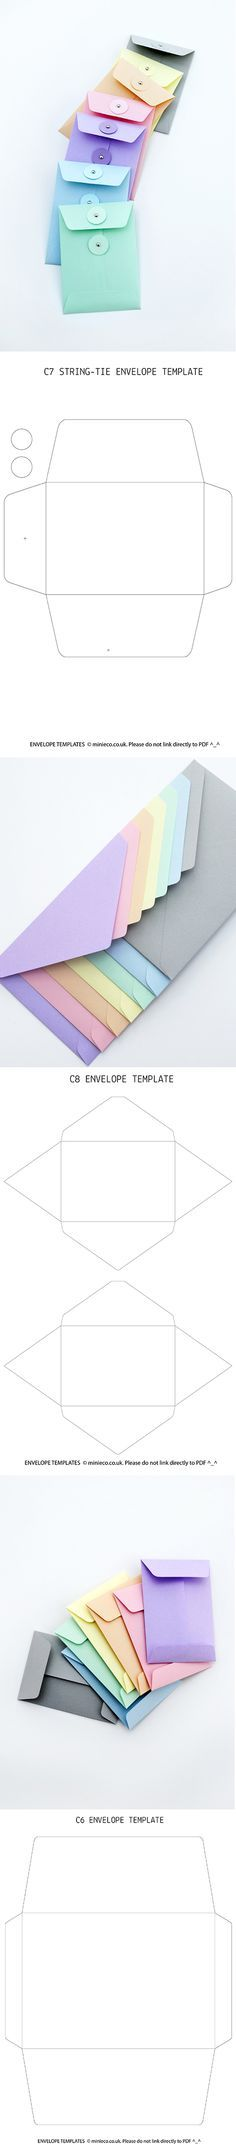 """Free Envelope Templates (C6, C7, C8) String-tie & standard designs I think the string tie ones would be adorable if we printed something like """"Thanks for being a part of our big day"""" and kept tips inside for each of the vendors."""